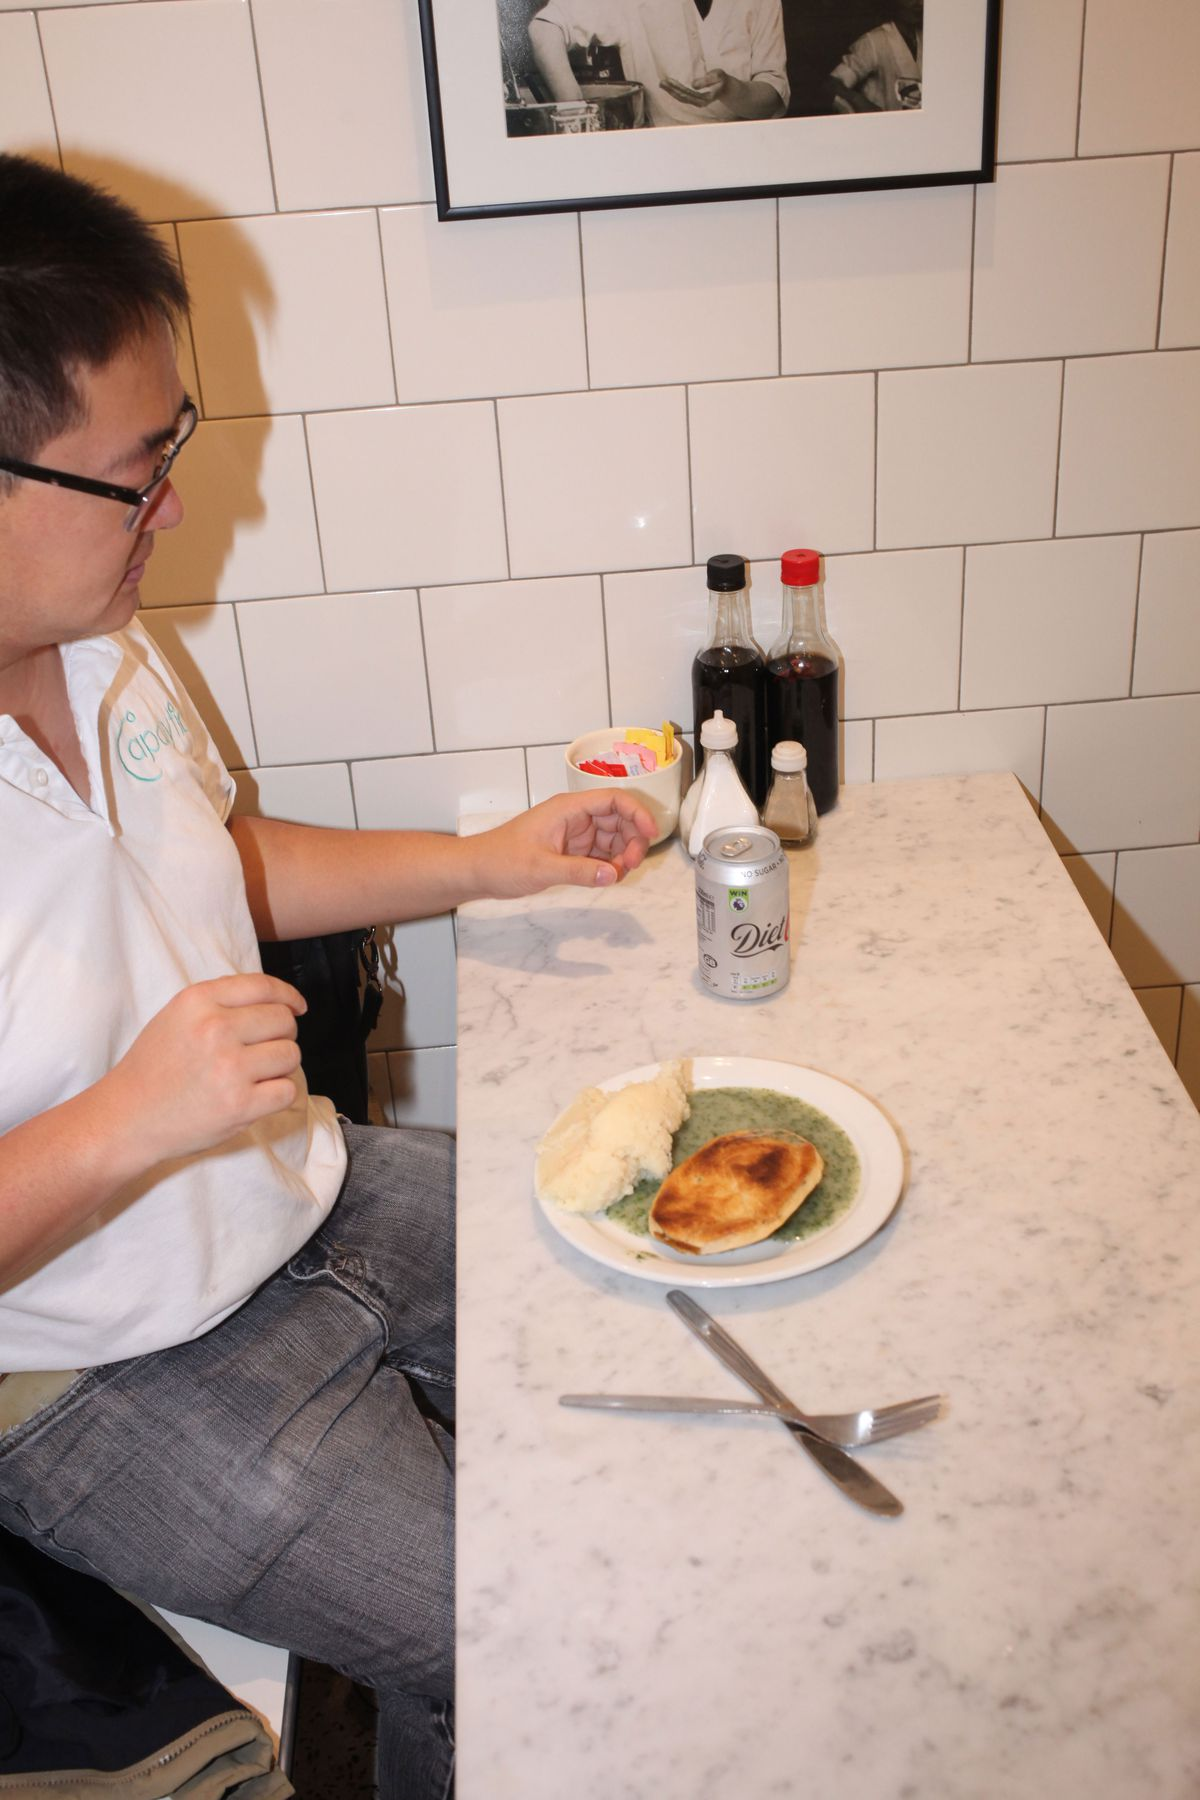 A customer enjoying their pie, mash, and liquor at G. Kelly on the roman road in east London